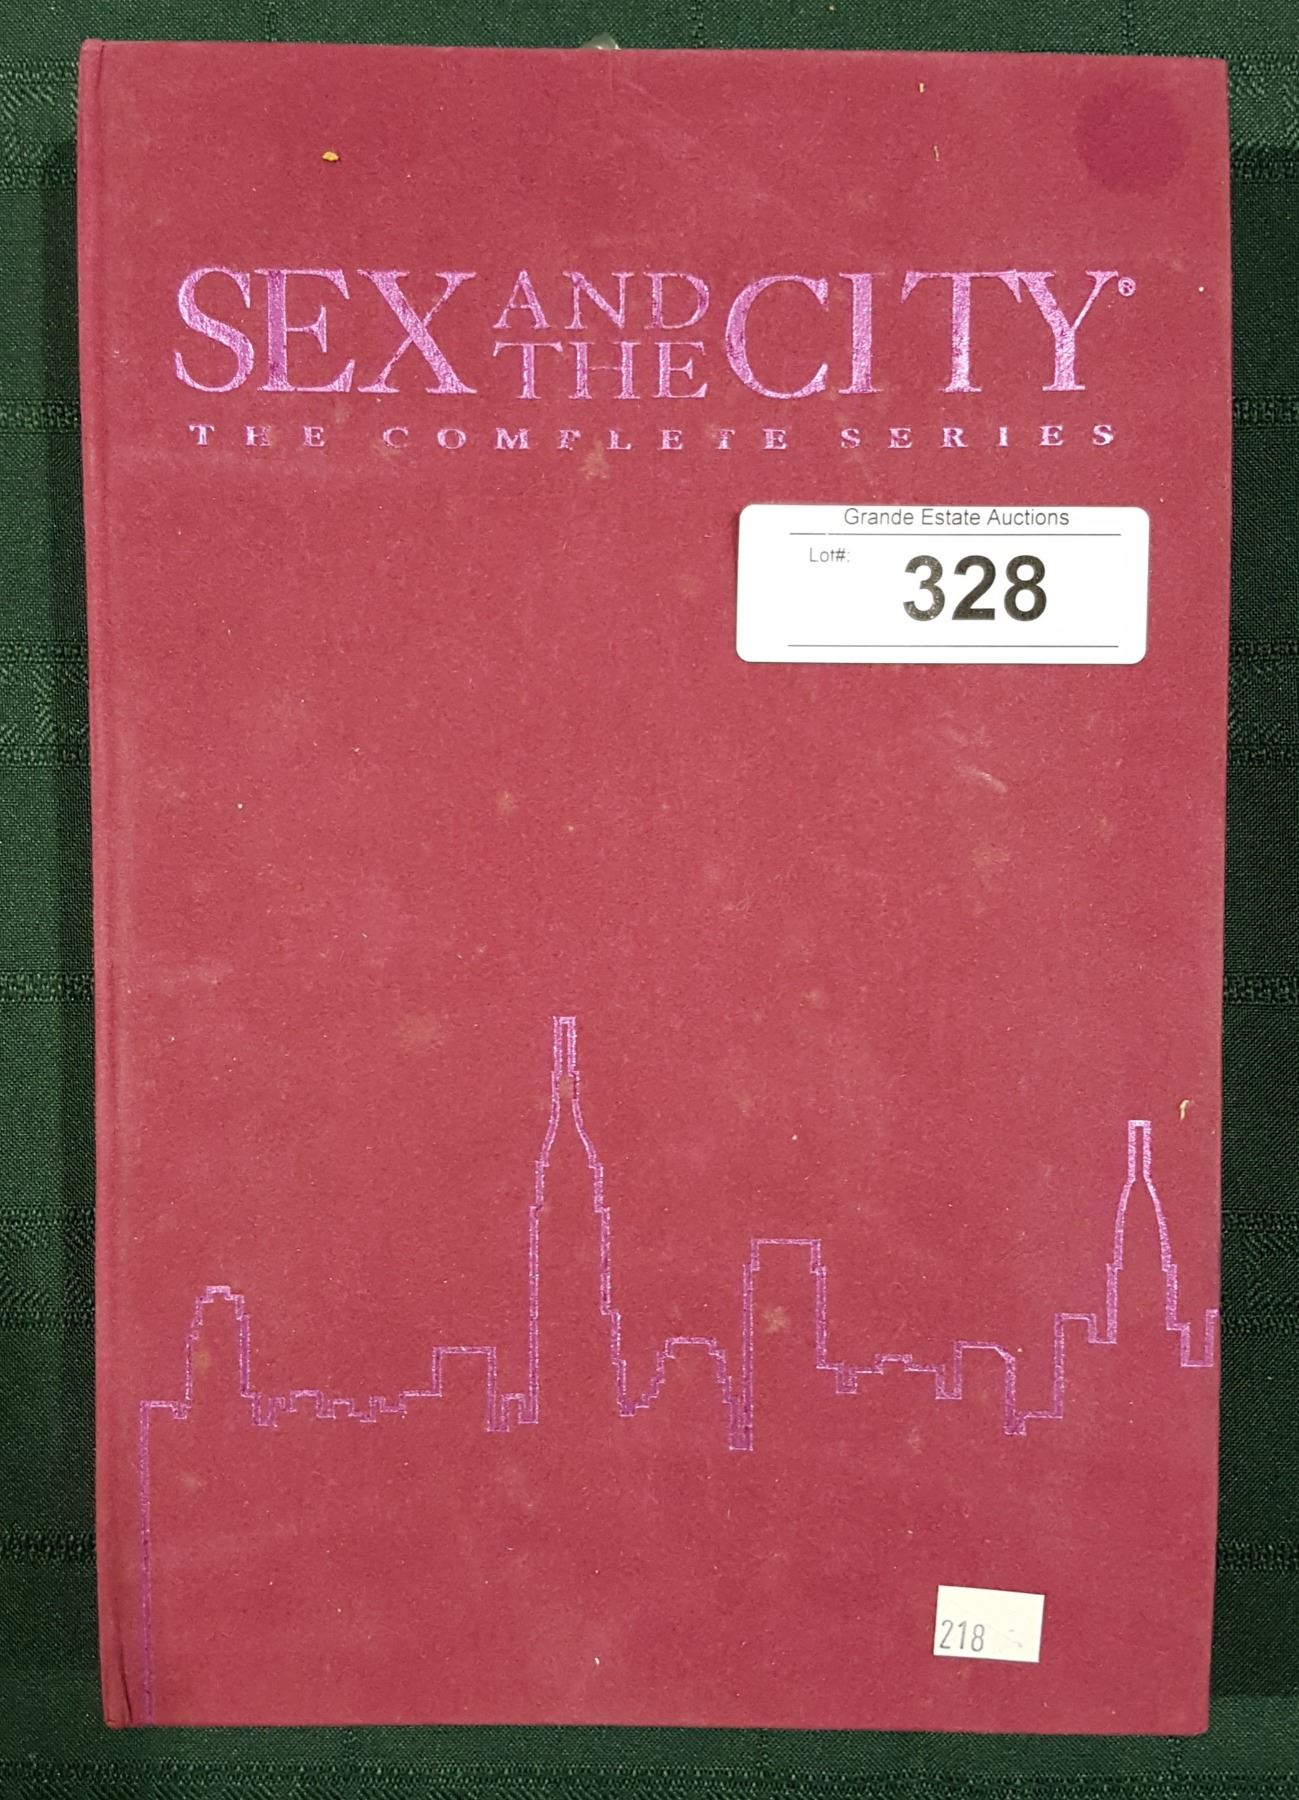 Sex and the city series dvd set